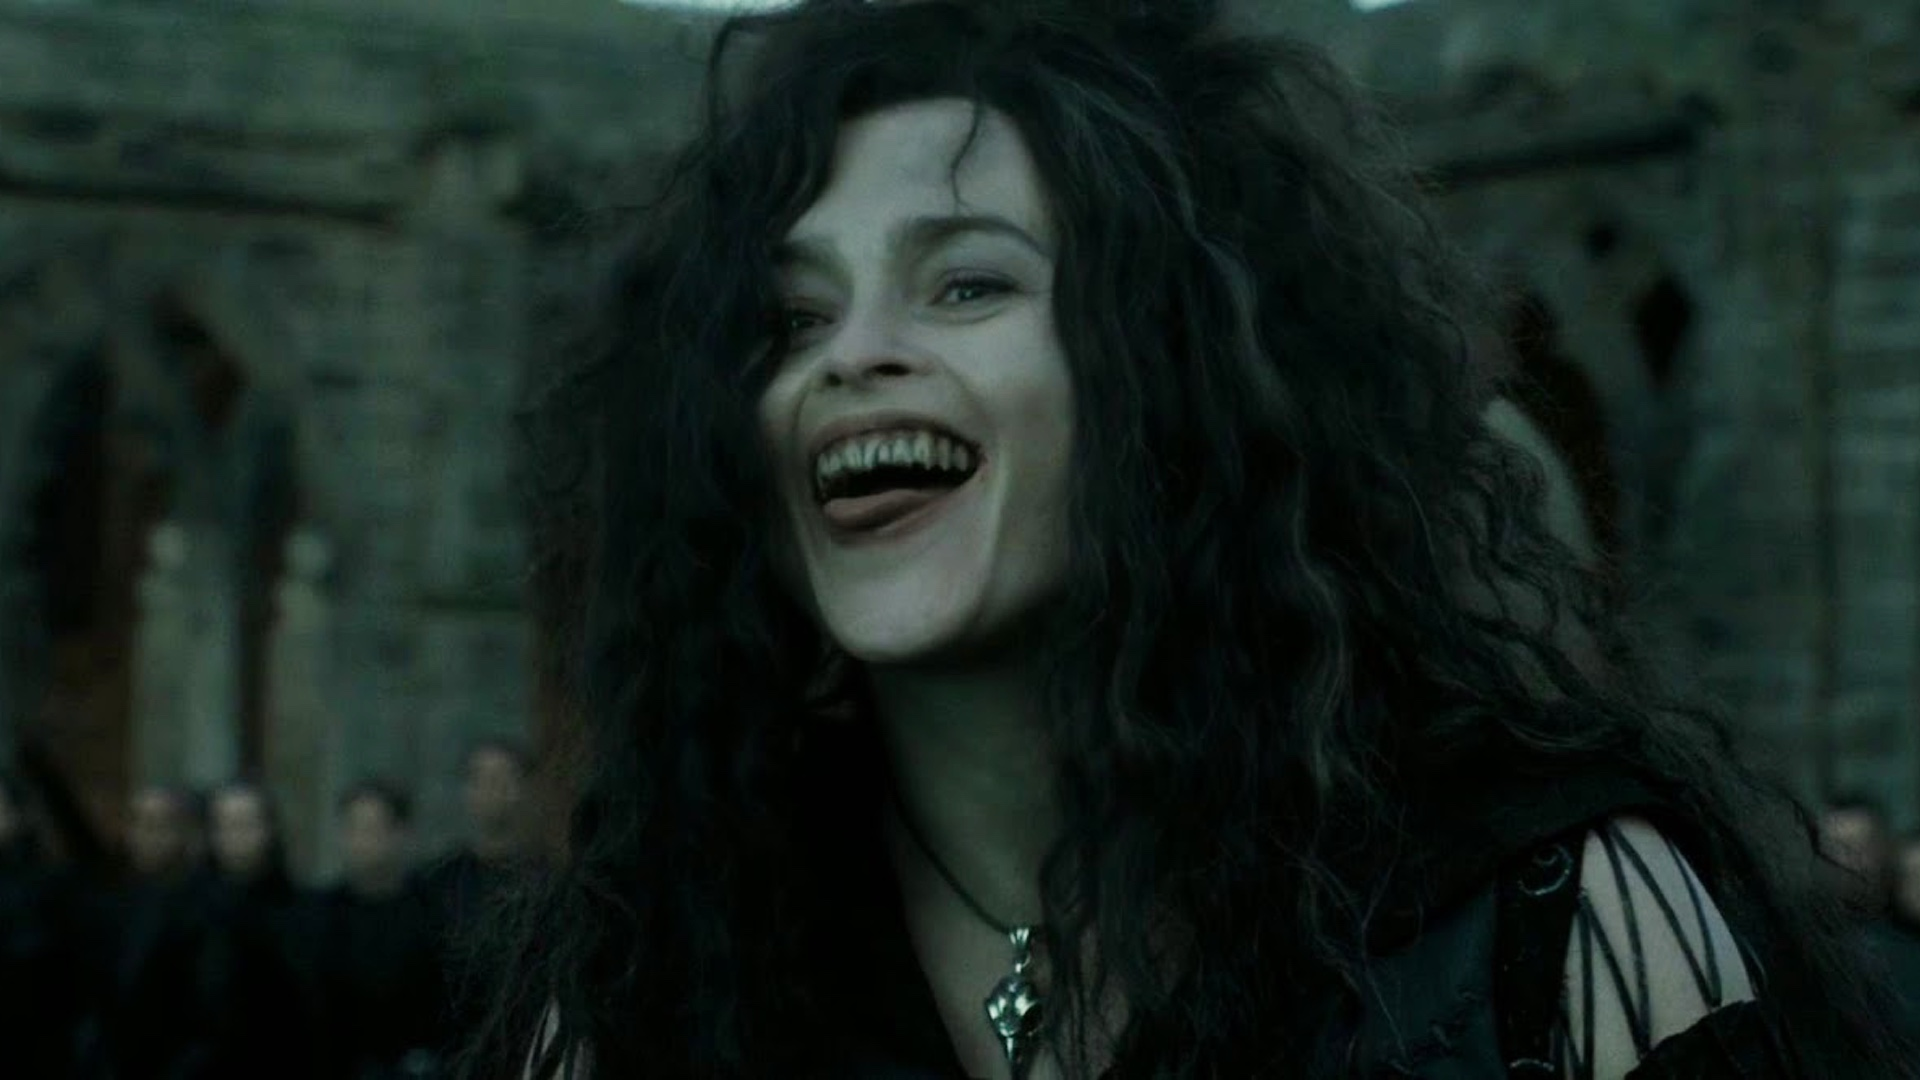 helena-bonham-carter-and-angelina-jolie-rumored-to-be-up-for-the-next-james-bond-villain-role-social.jpg